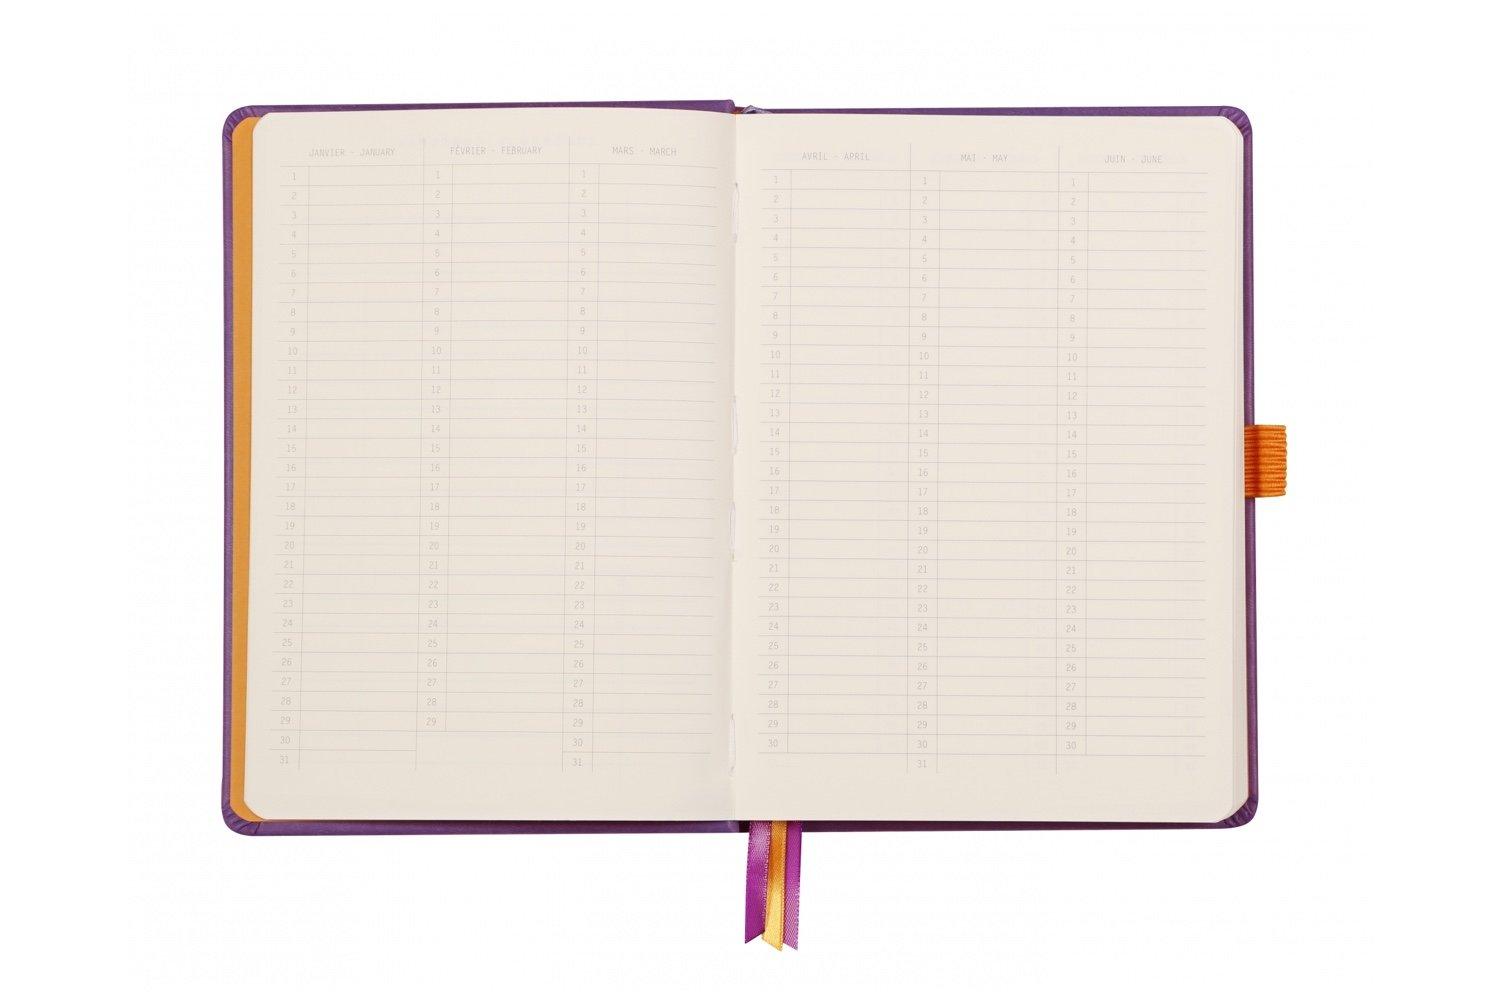 Rhodia Goalbook Dot Grid A5 Hardcover Journal - Turquoise (Ivory Paper)